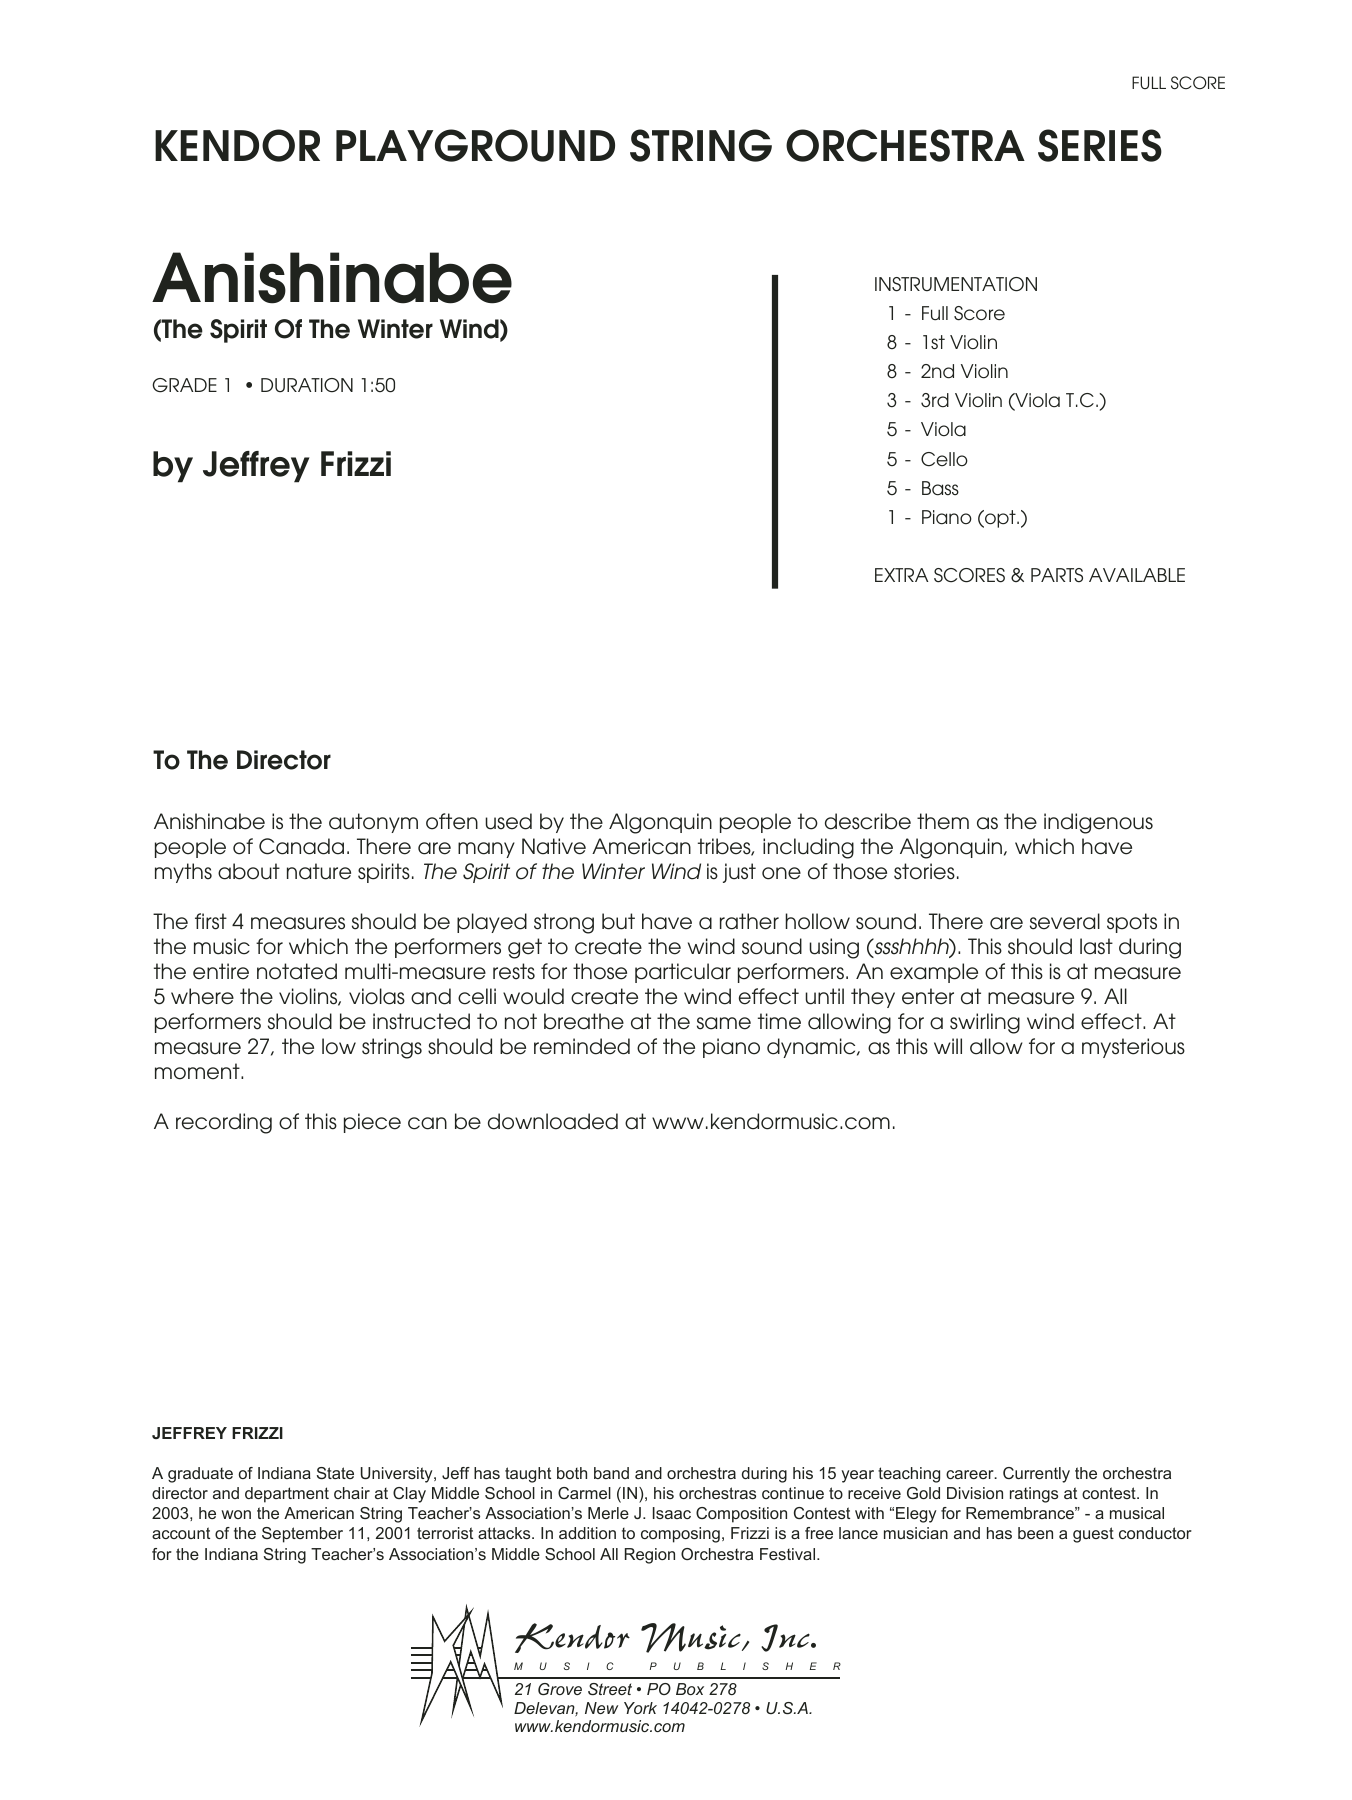 Anishinabe (The Spirit Of The Winter Wind) (COMPLETE) sheet music for orchestra by Jeffrey Frizzi. Score Image Preview.